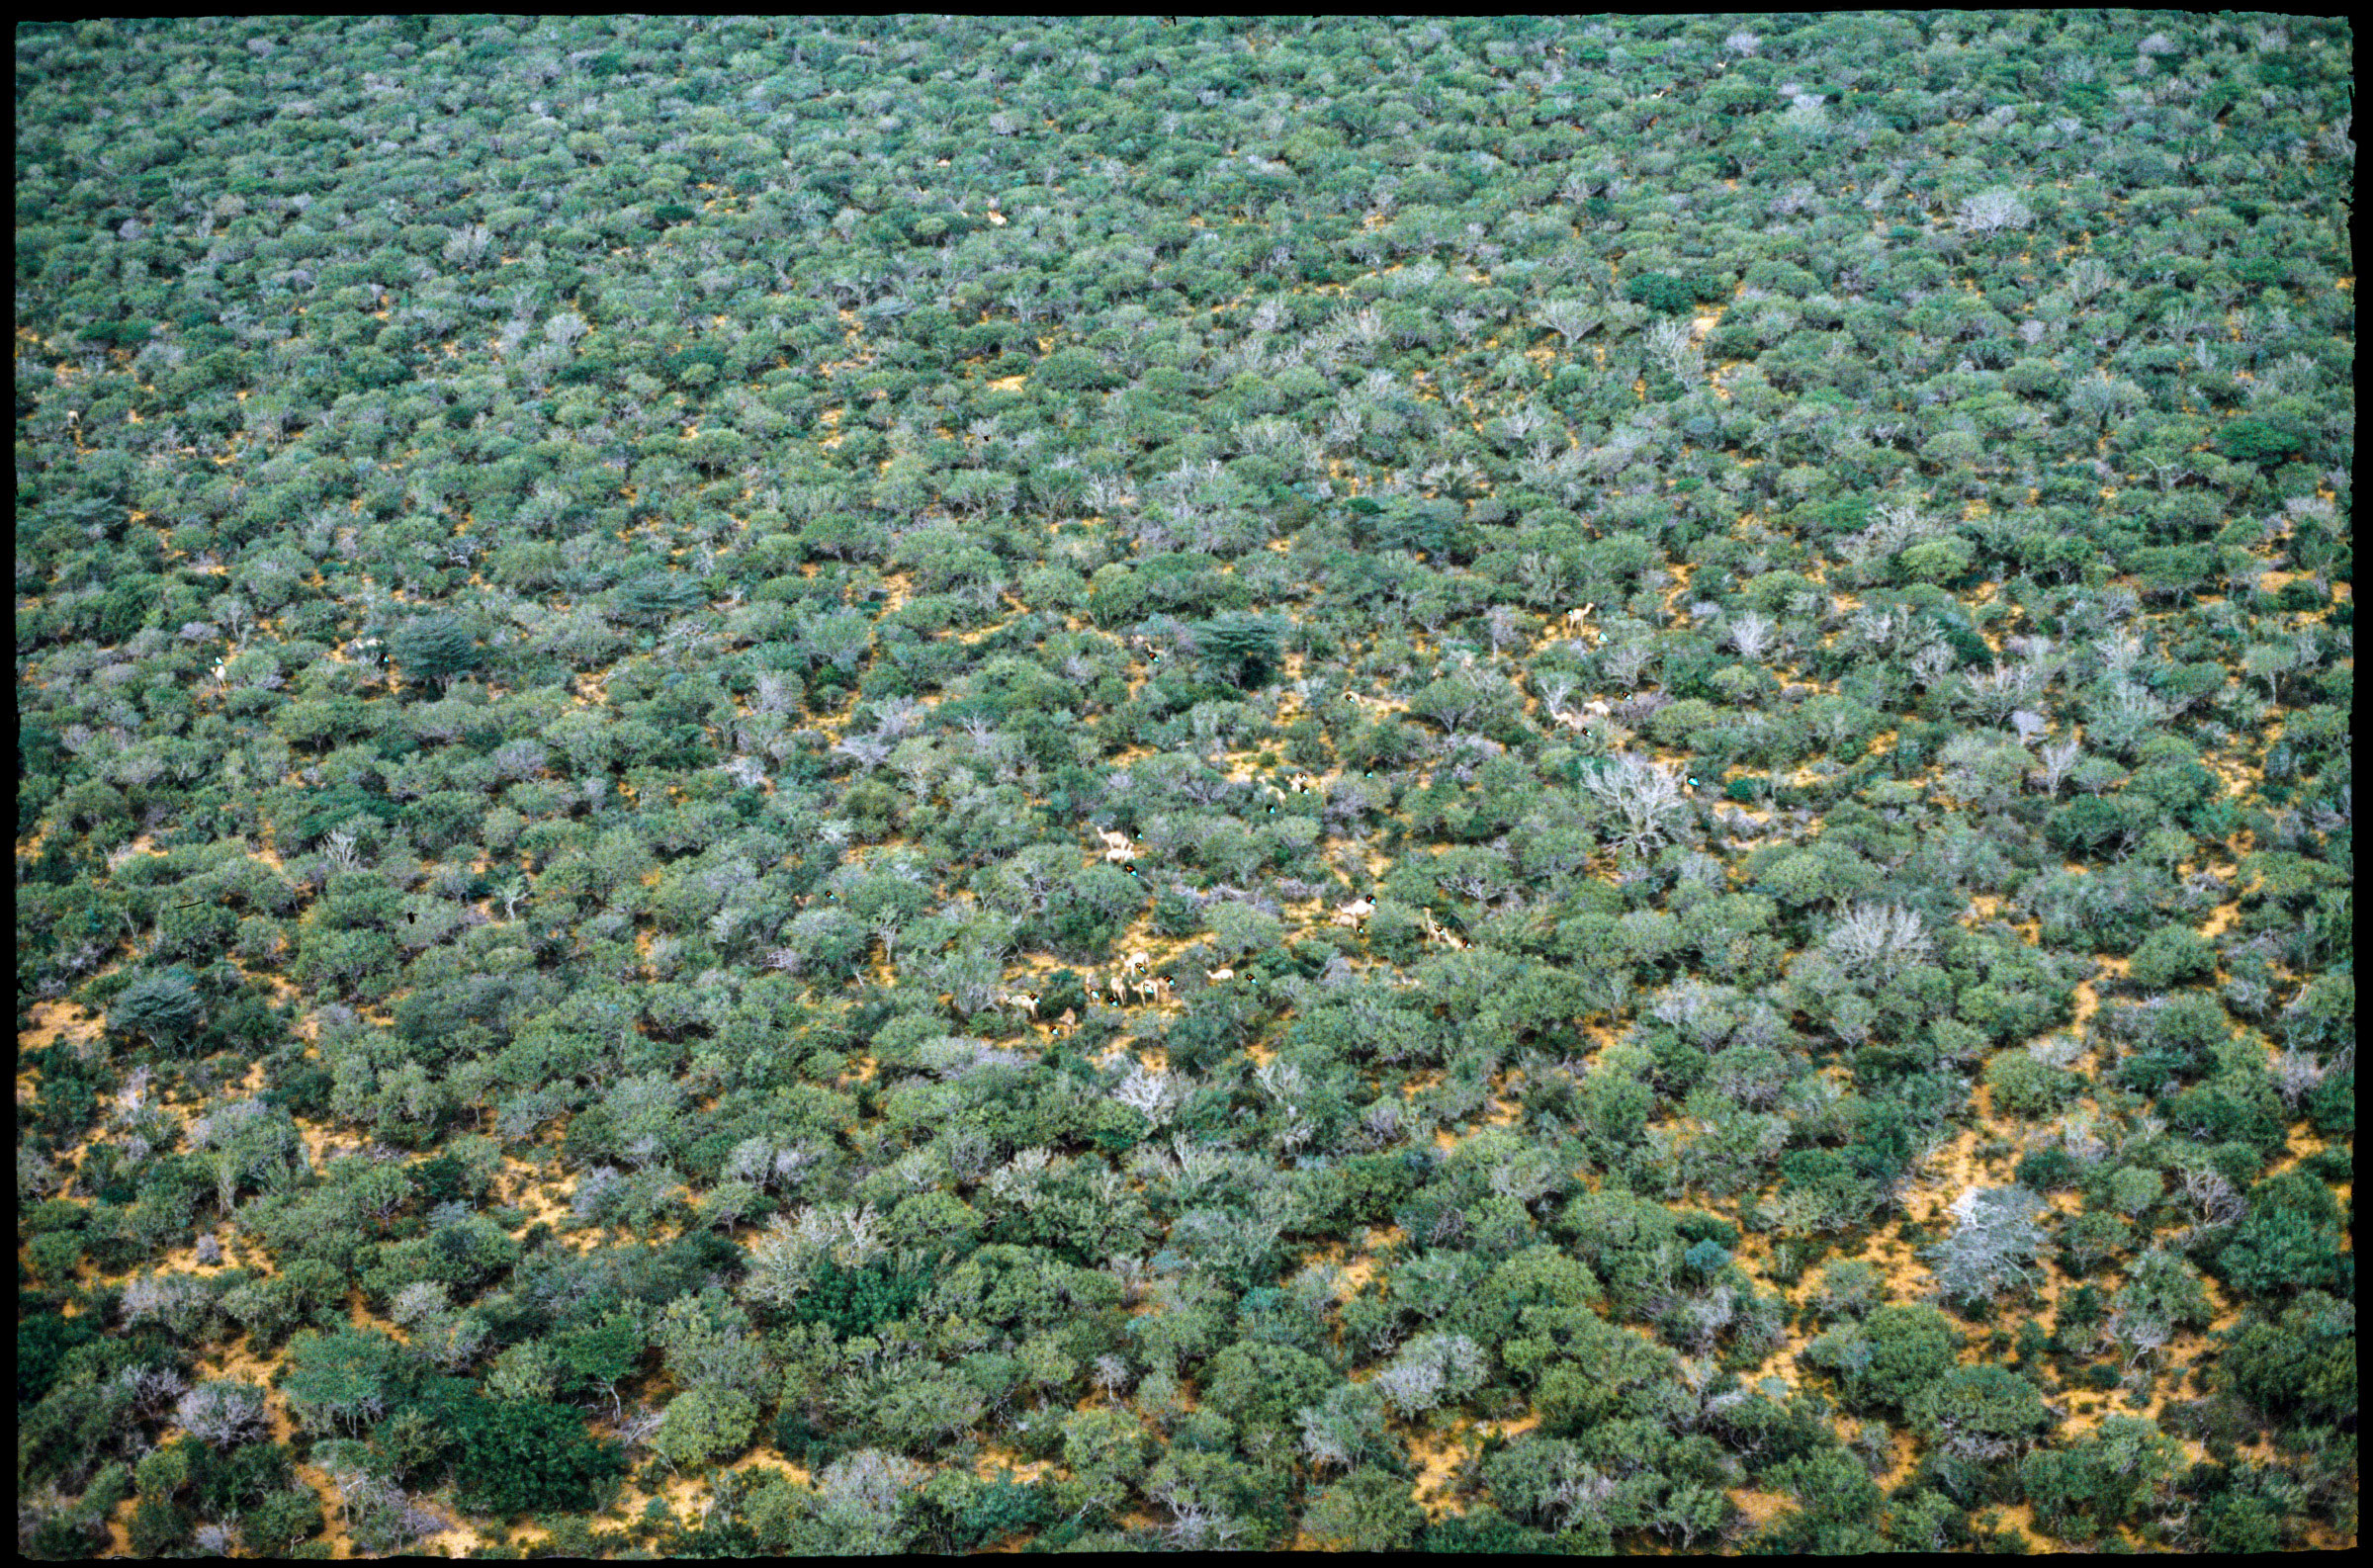 An aerial view of camels feeding on lush, green foliage, as photographed by a member of Dr. Watson's team in the late 1970s to early 1980s. (Courtesy of Resource Management and Research)